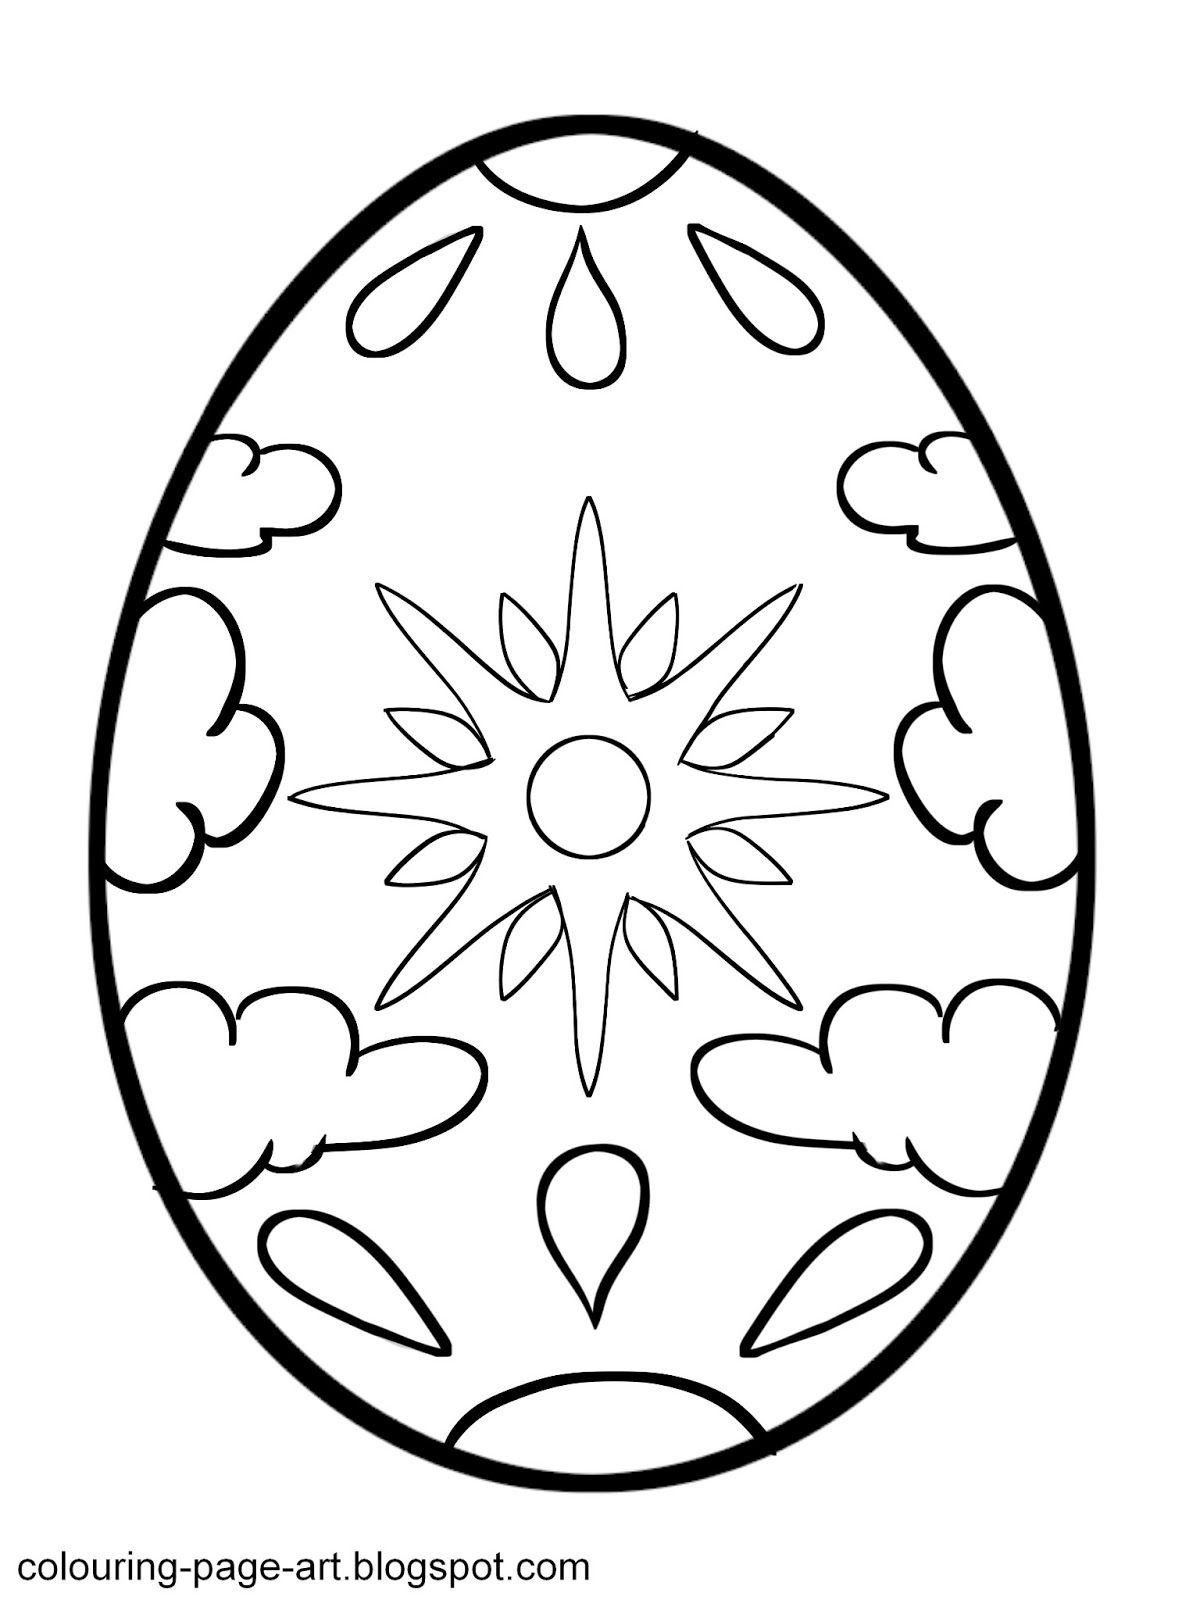 Easter Eggs Printable Coloring Pages Easter Egg Printable Colouring Pages Coloring Easter Eggs Easter Egg Coloring Pages Egg Coloring Page